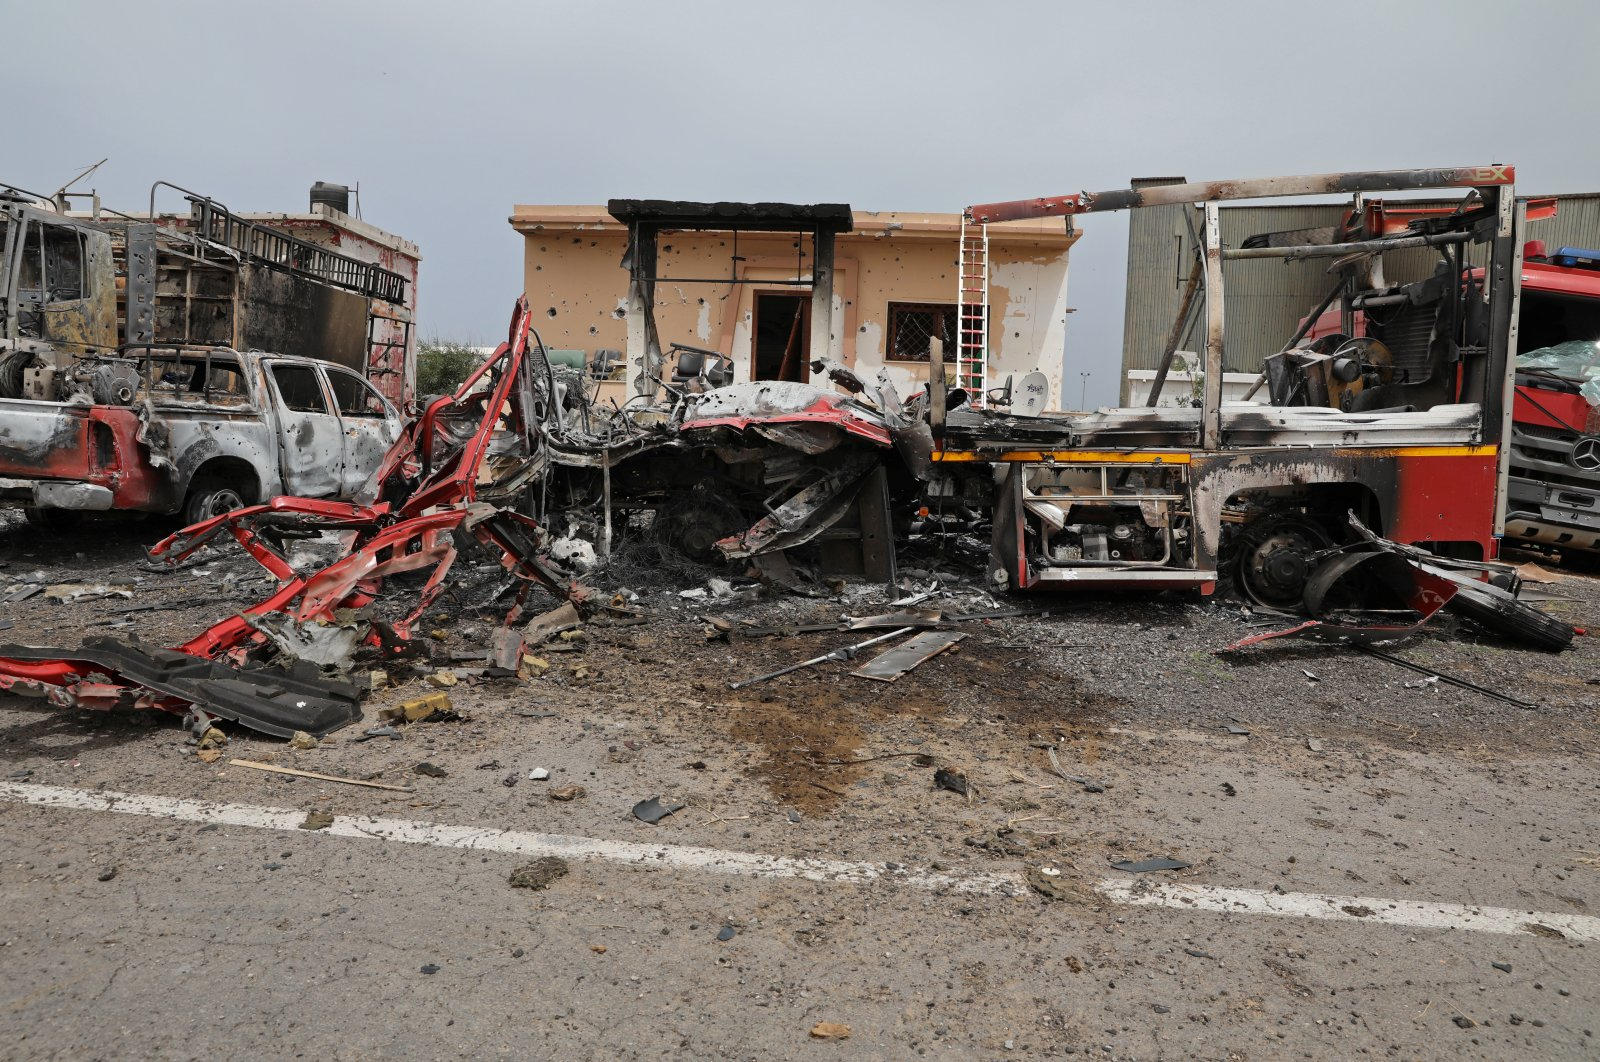 Damaged vehicles are seen at Tripoli's Mitiga airport after it was hit by shelling in Tripoli, Libya, May 10, 2020. (REUTERS Photo)